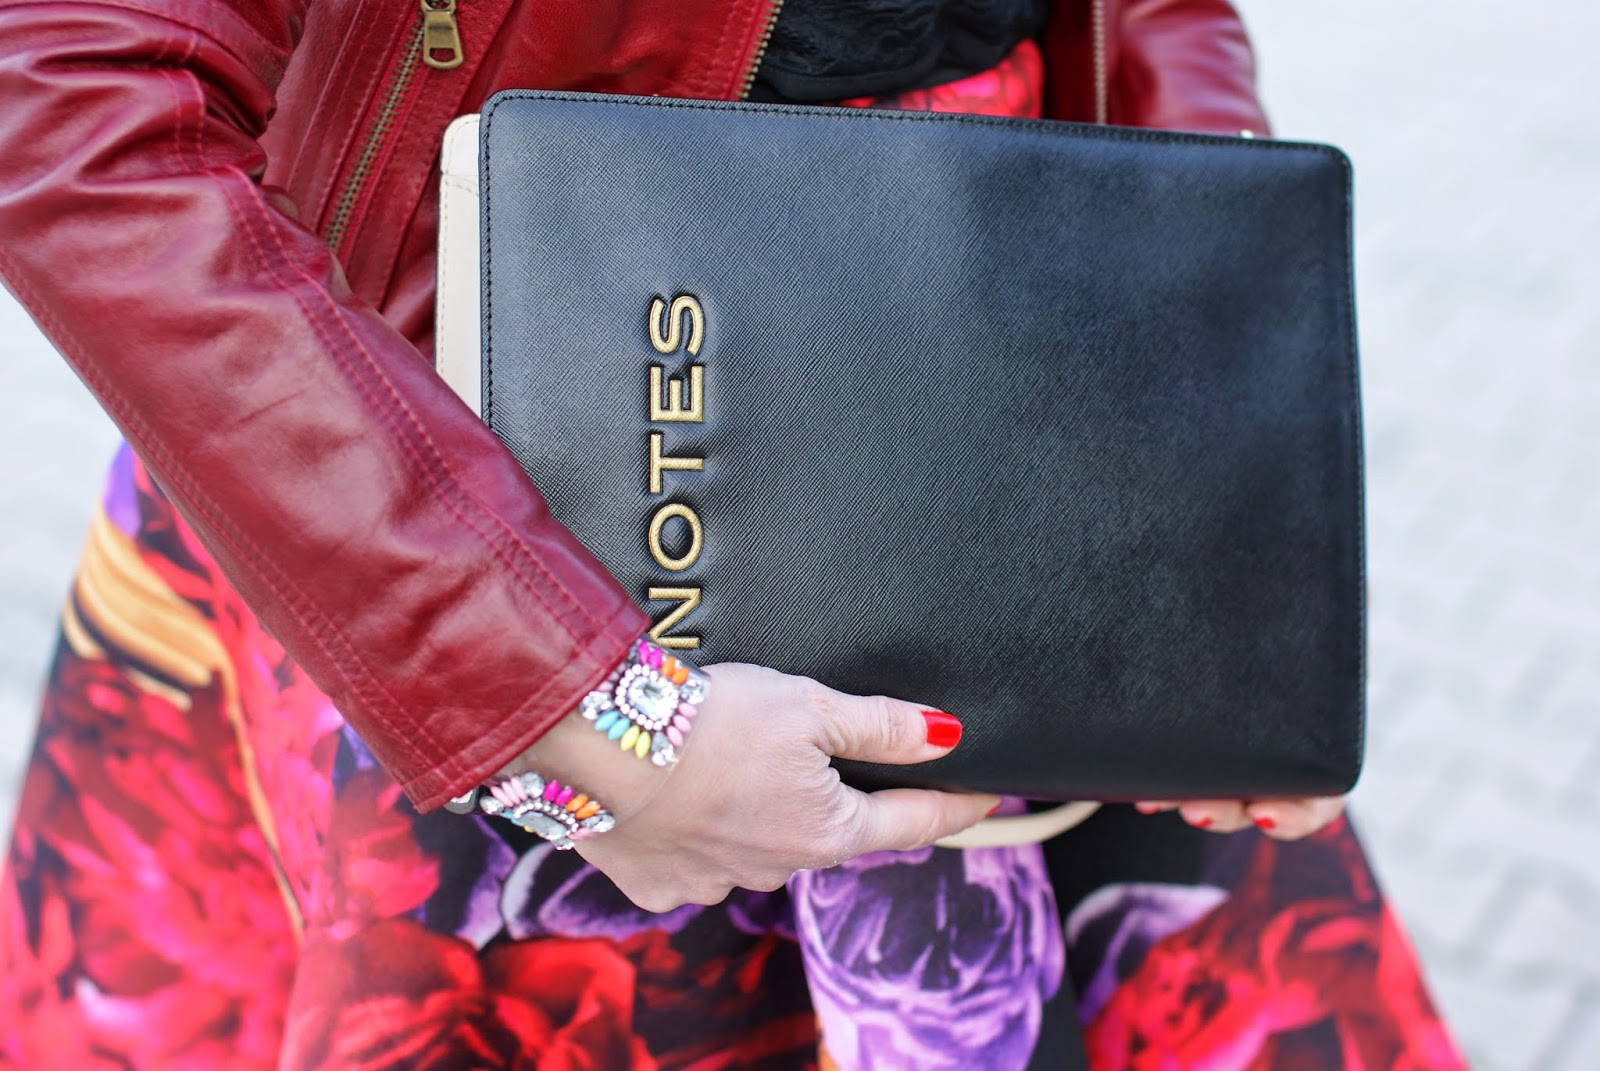 Moschino cheap & chic notes clutch, Stradivarius bracelet, Fashion and Cookies, fashion blogger